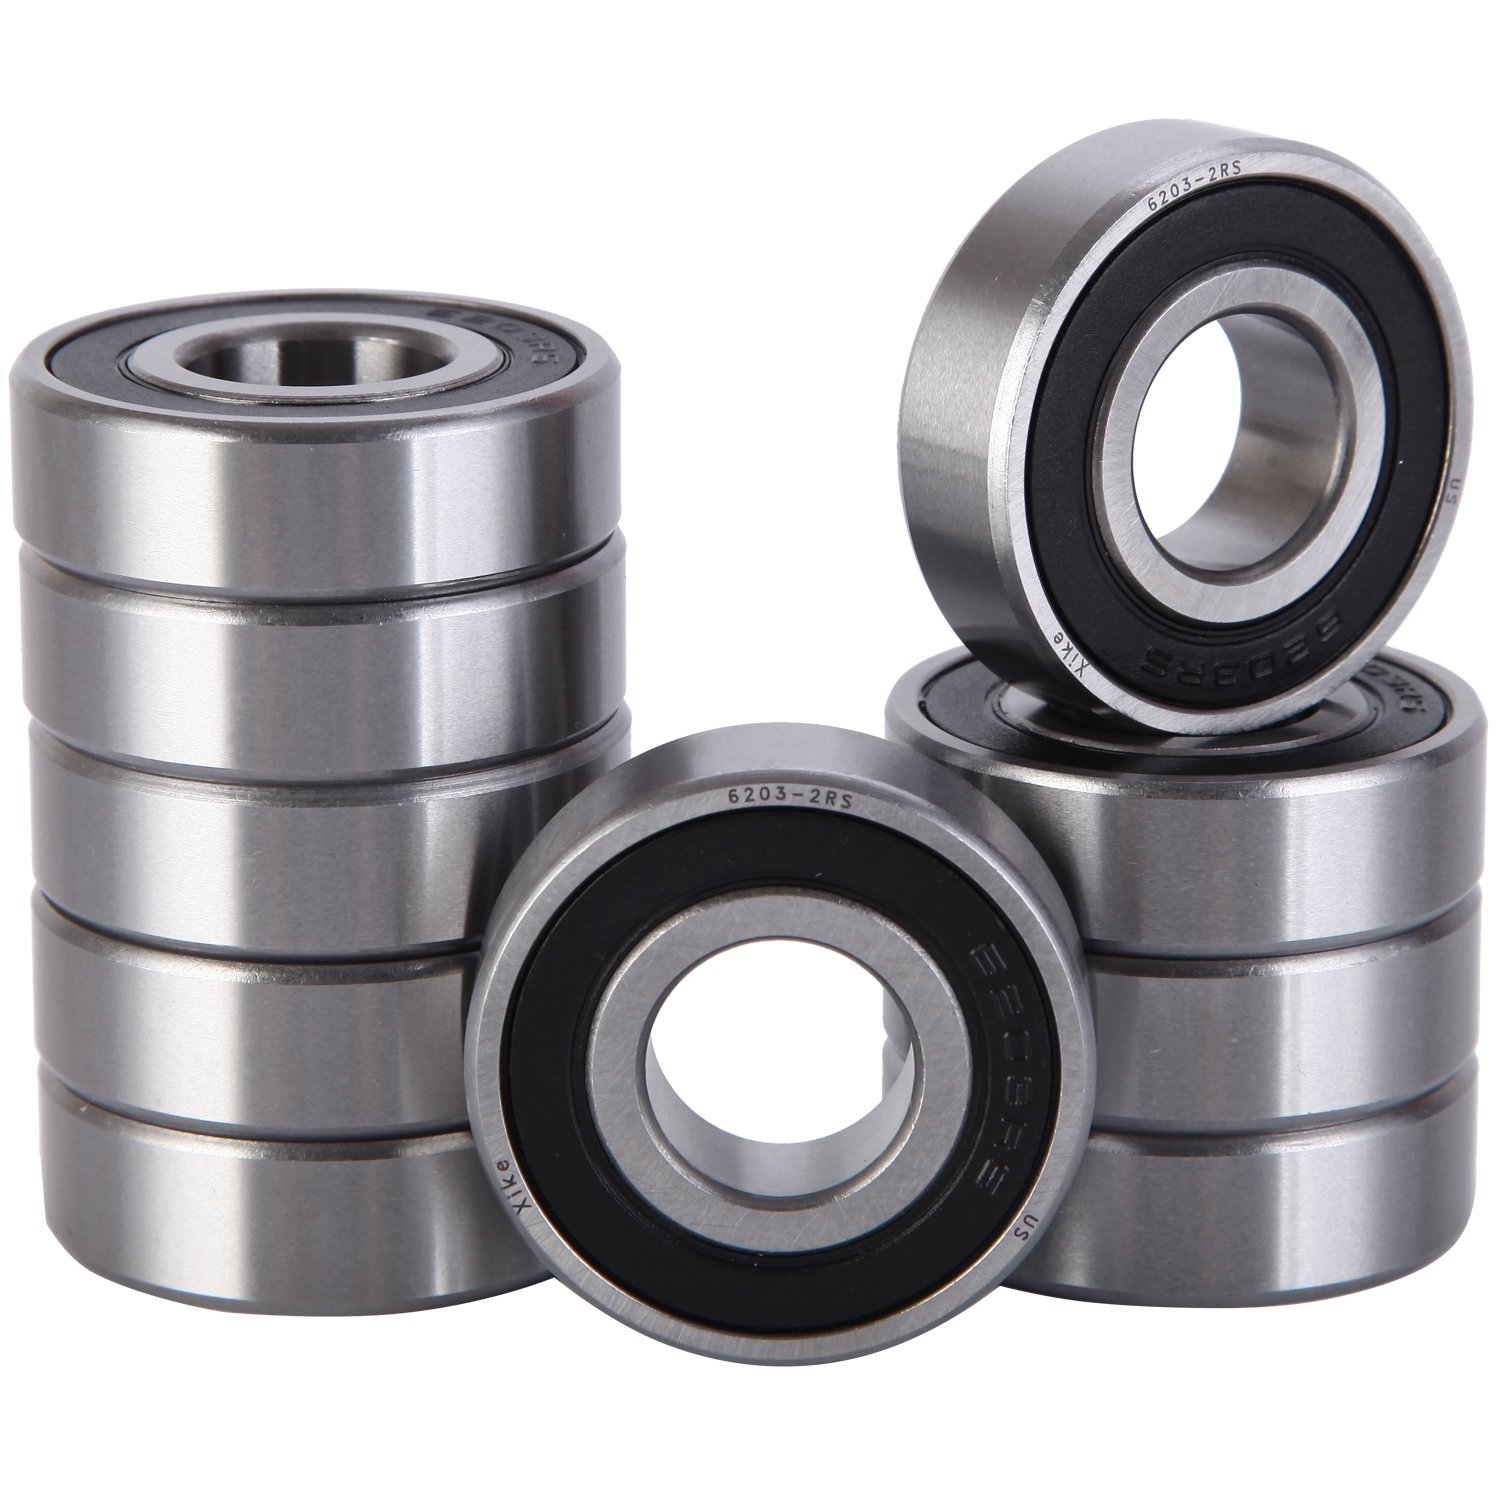 XiKe 10 Pack 6203-2RS Bearings 17x40x12mm, Stable Performance and Cost-Effective, Double Seal and Pre-Lubricated, Deep Groove Ball Bearings.